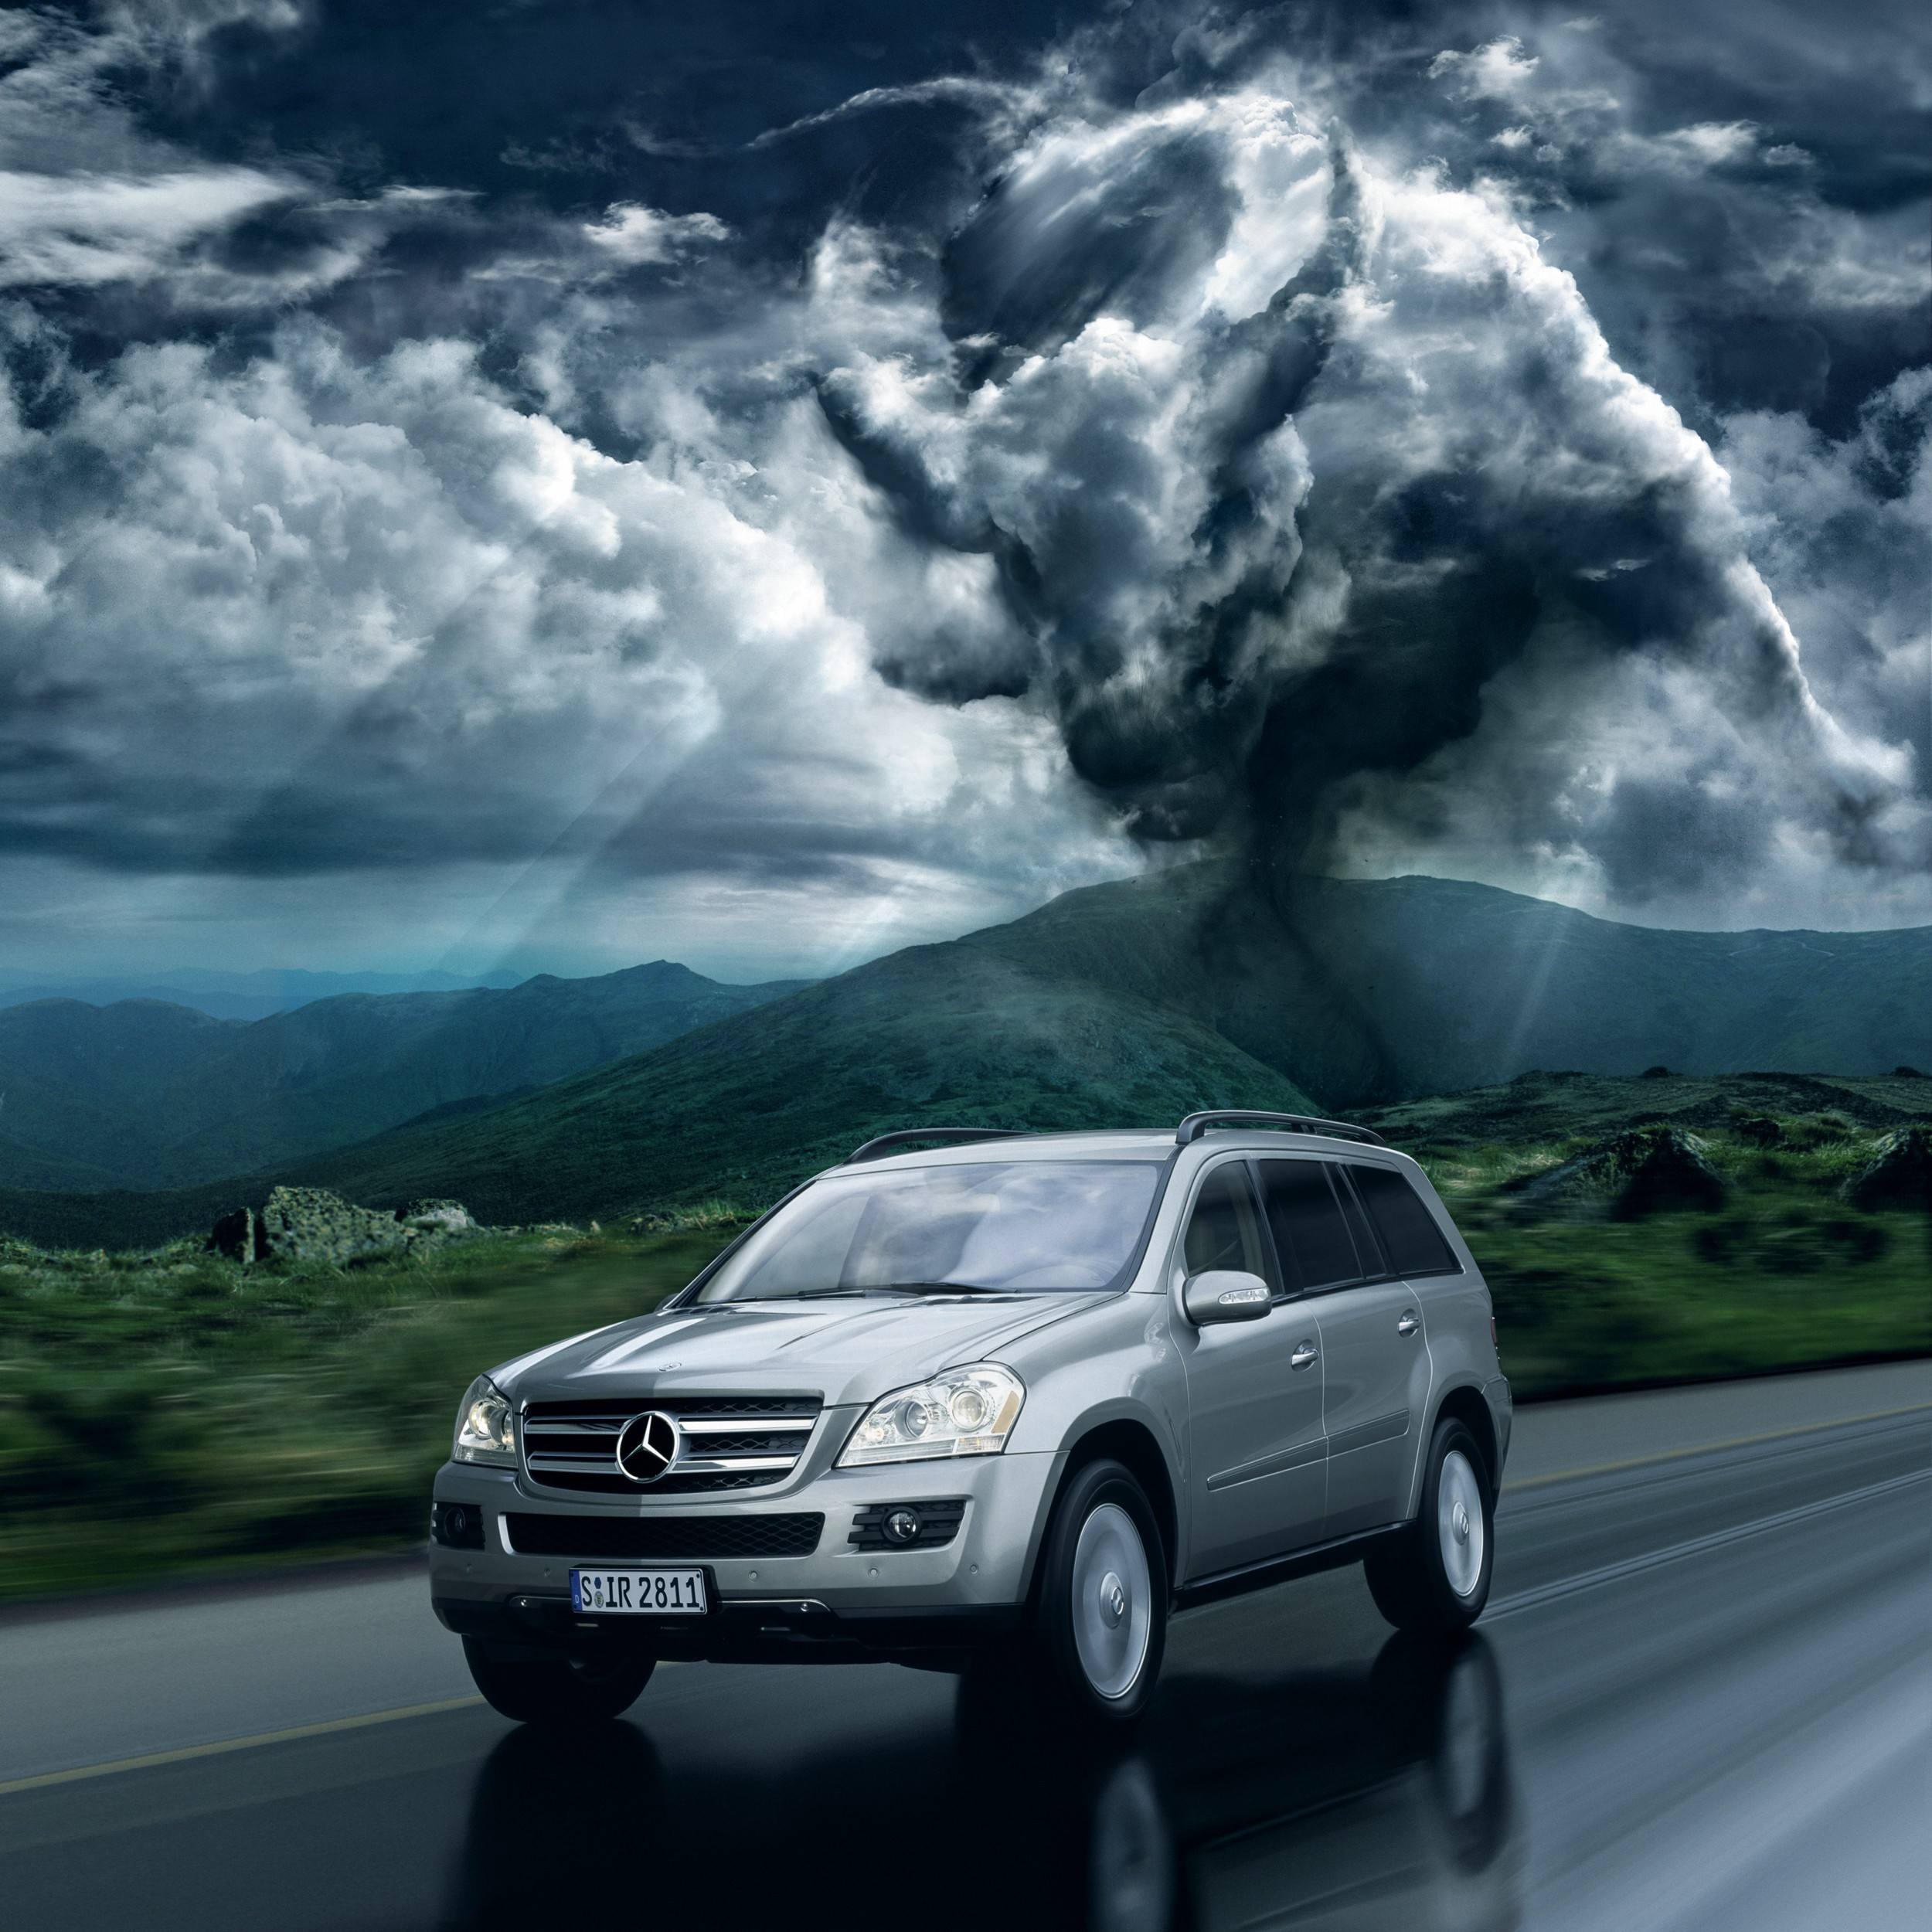 clouds Car cars Mercedes HD Wallpaper